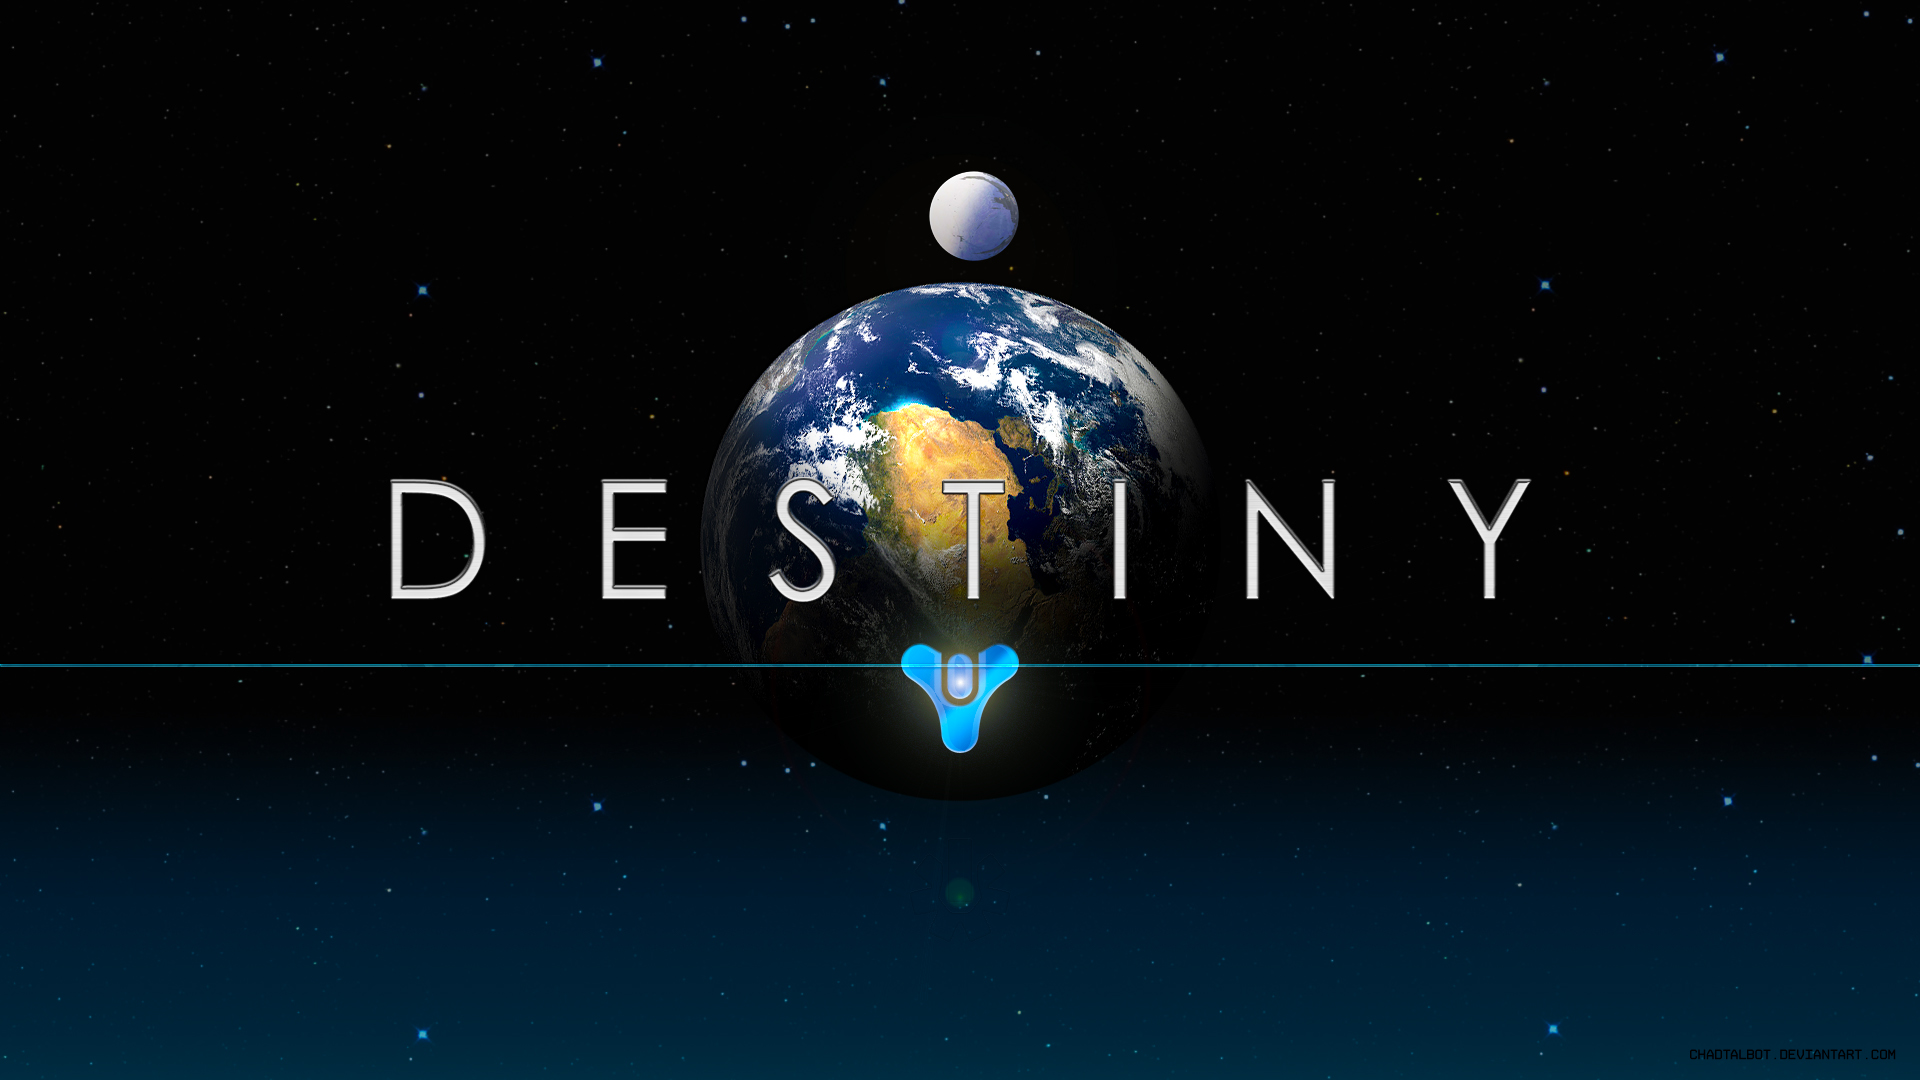 Destiny by Bungie Wallpaper by chadtalbot